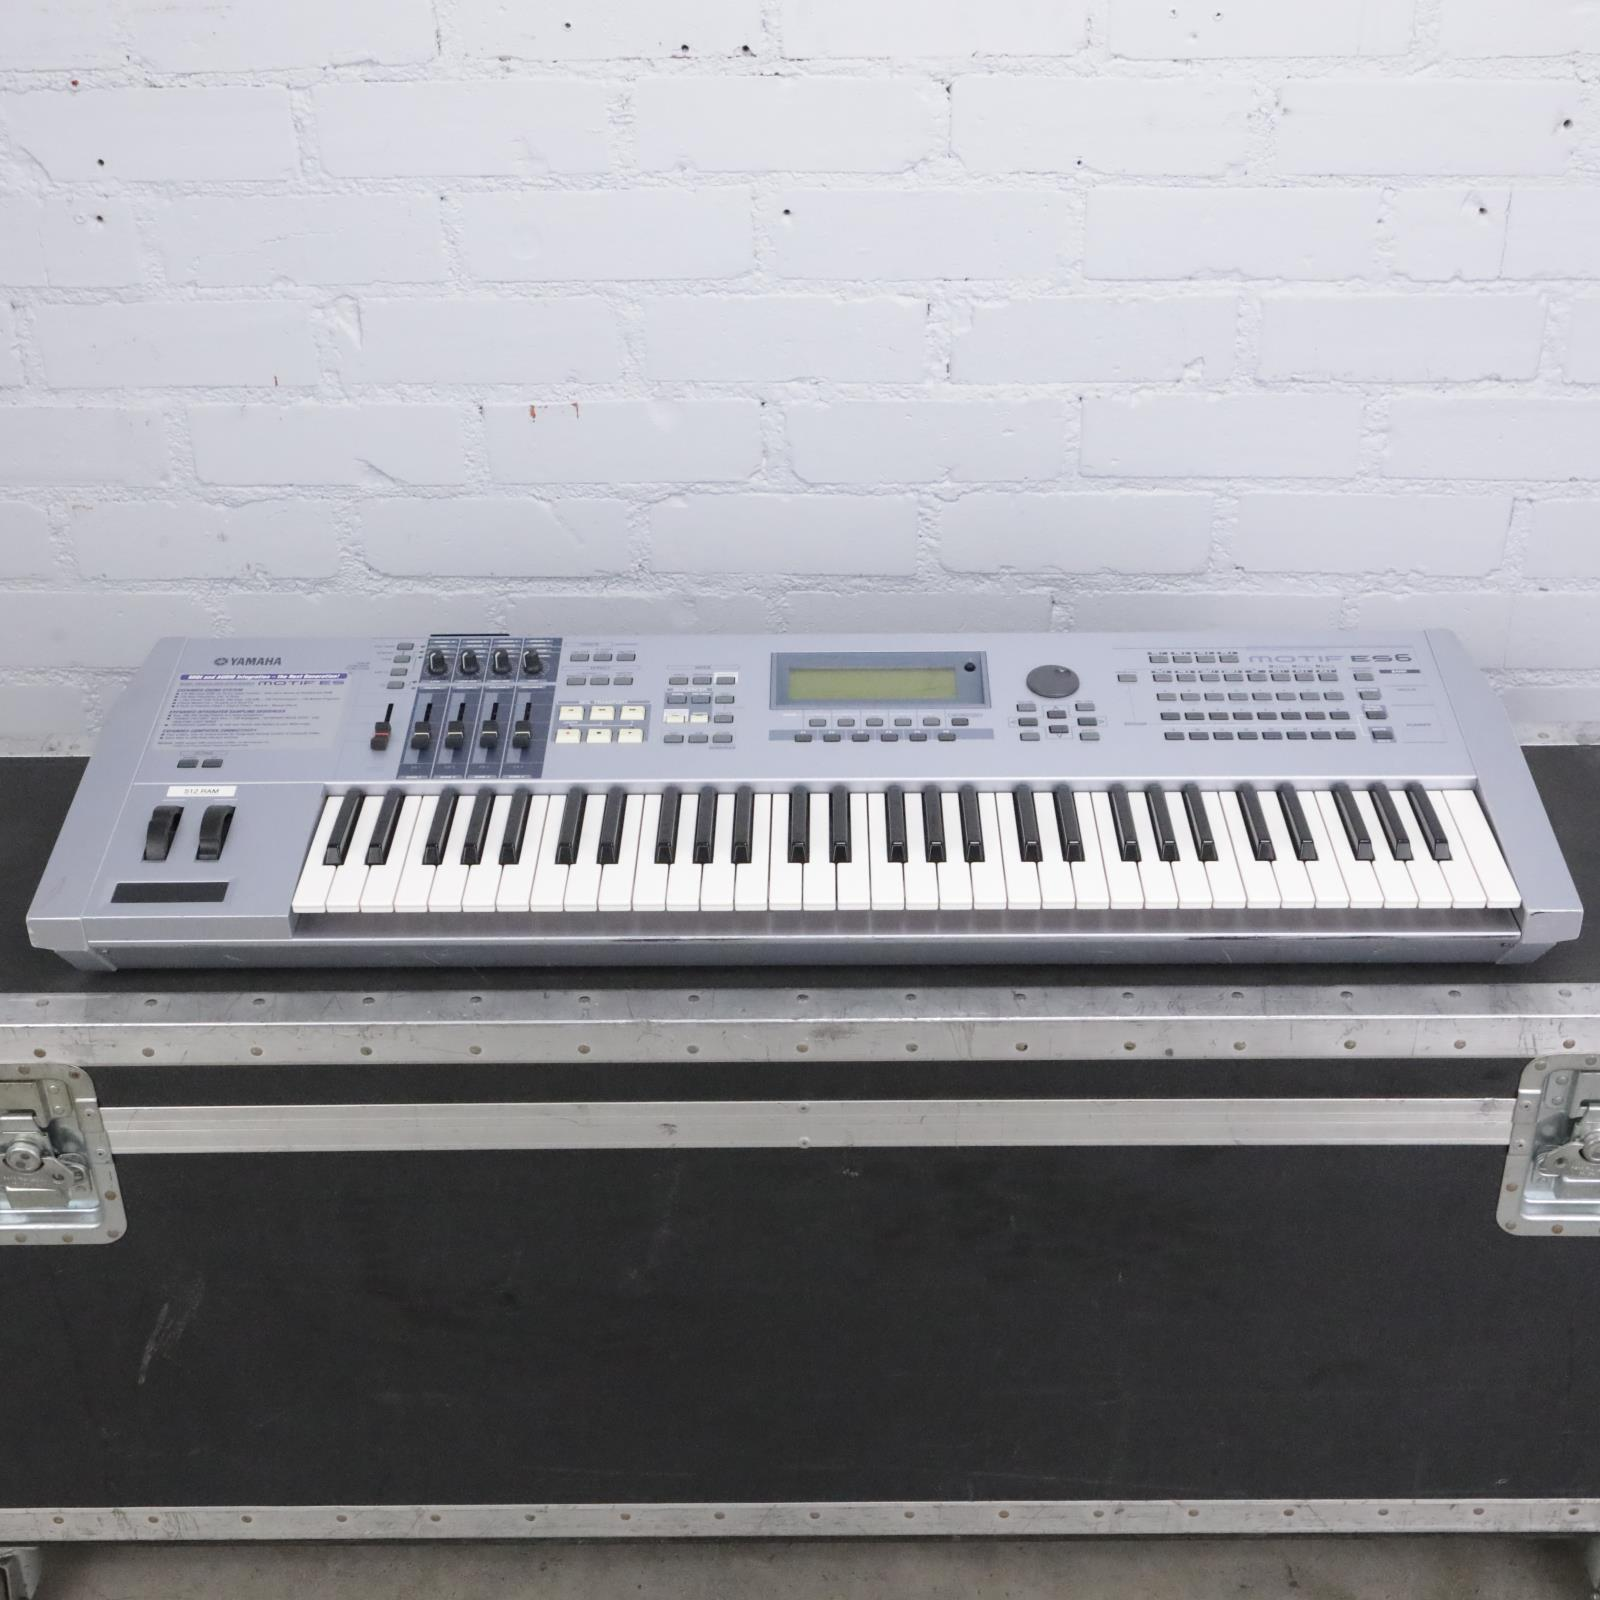 Yamaha Motif ES6 Music Production Synthesizer w/ Anvil Road Case #42434